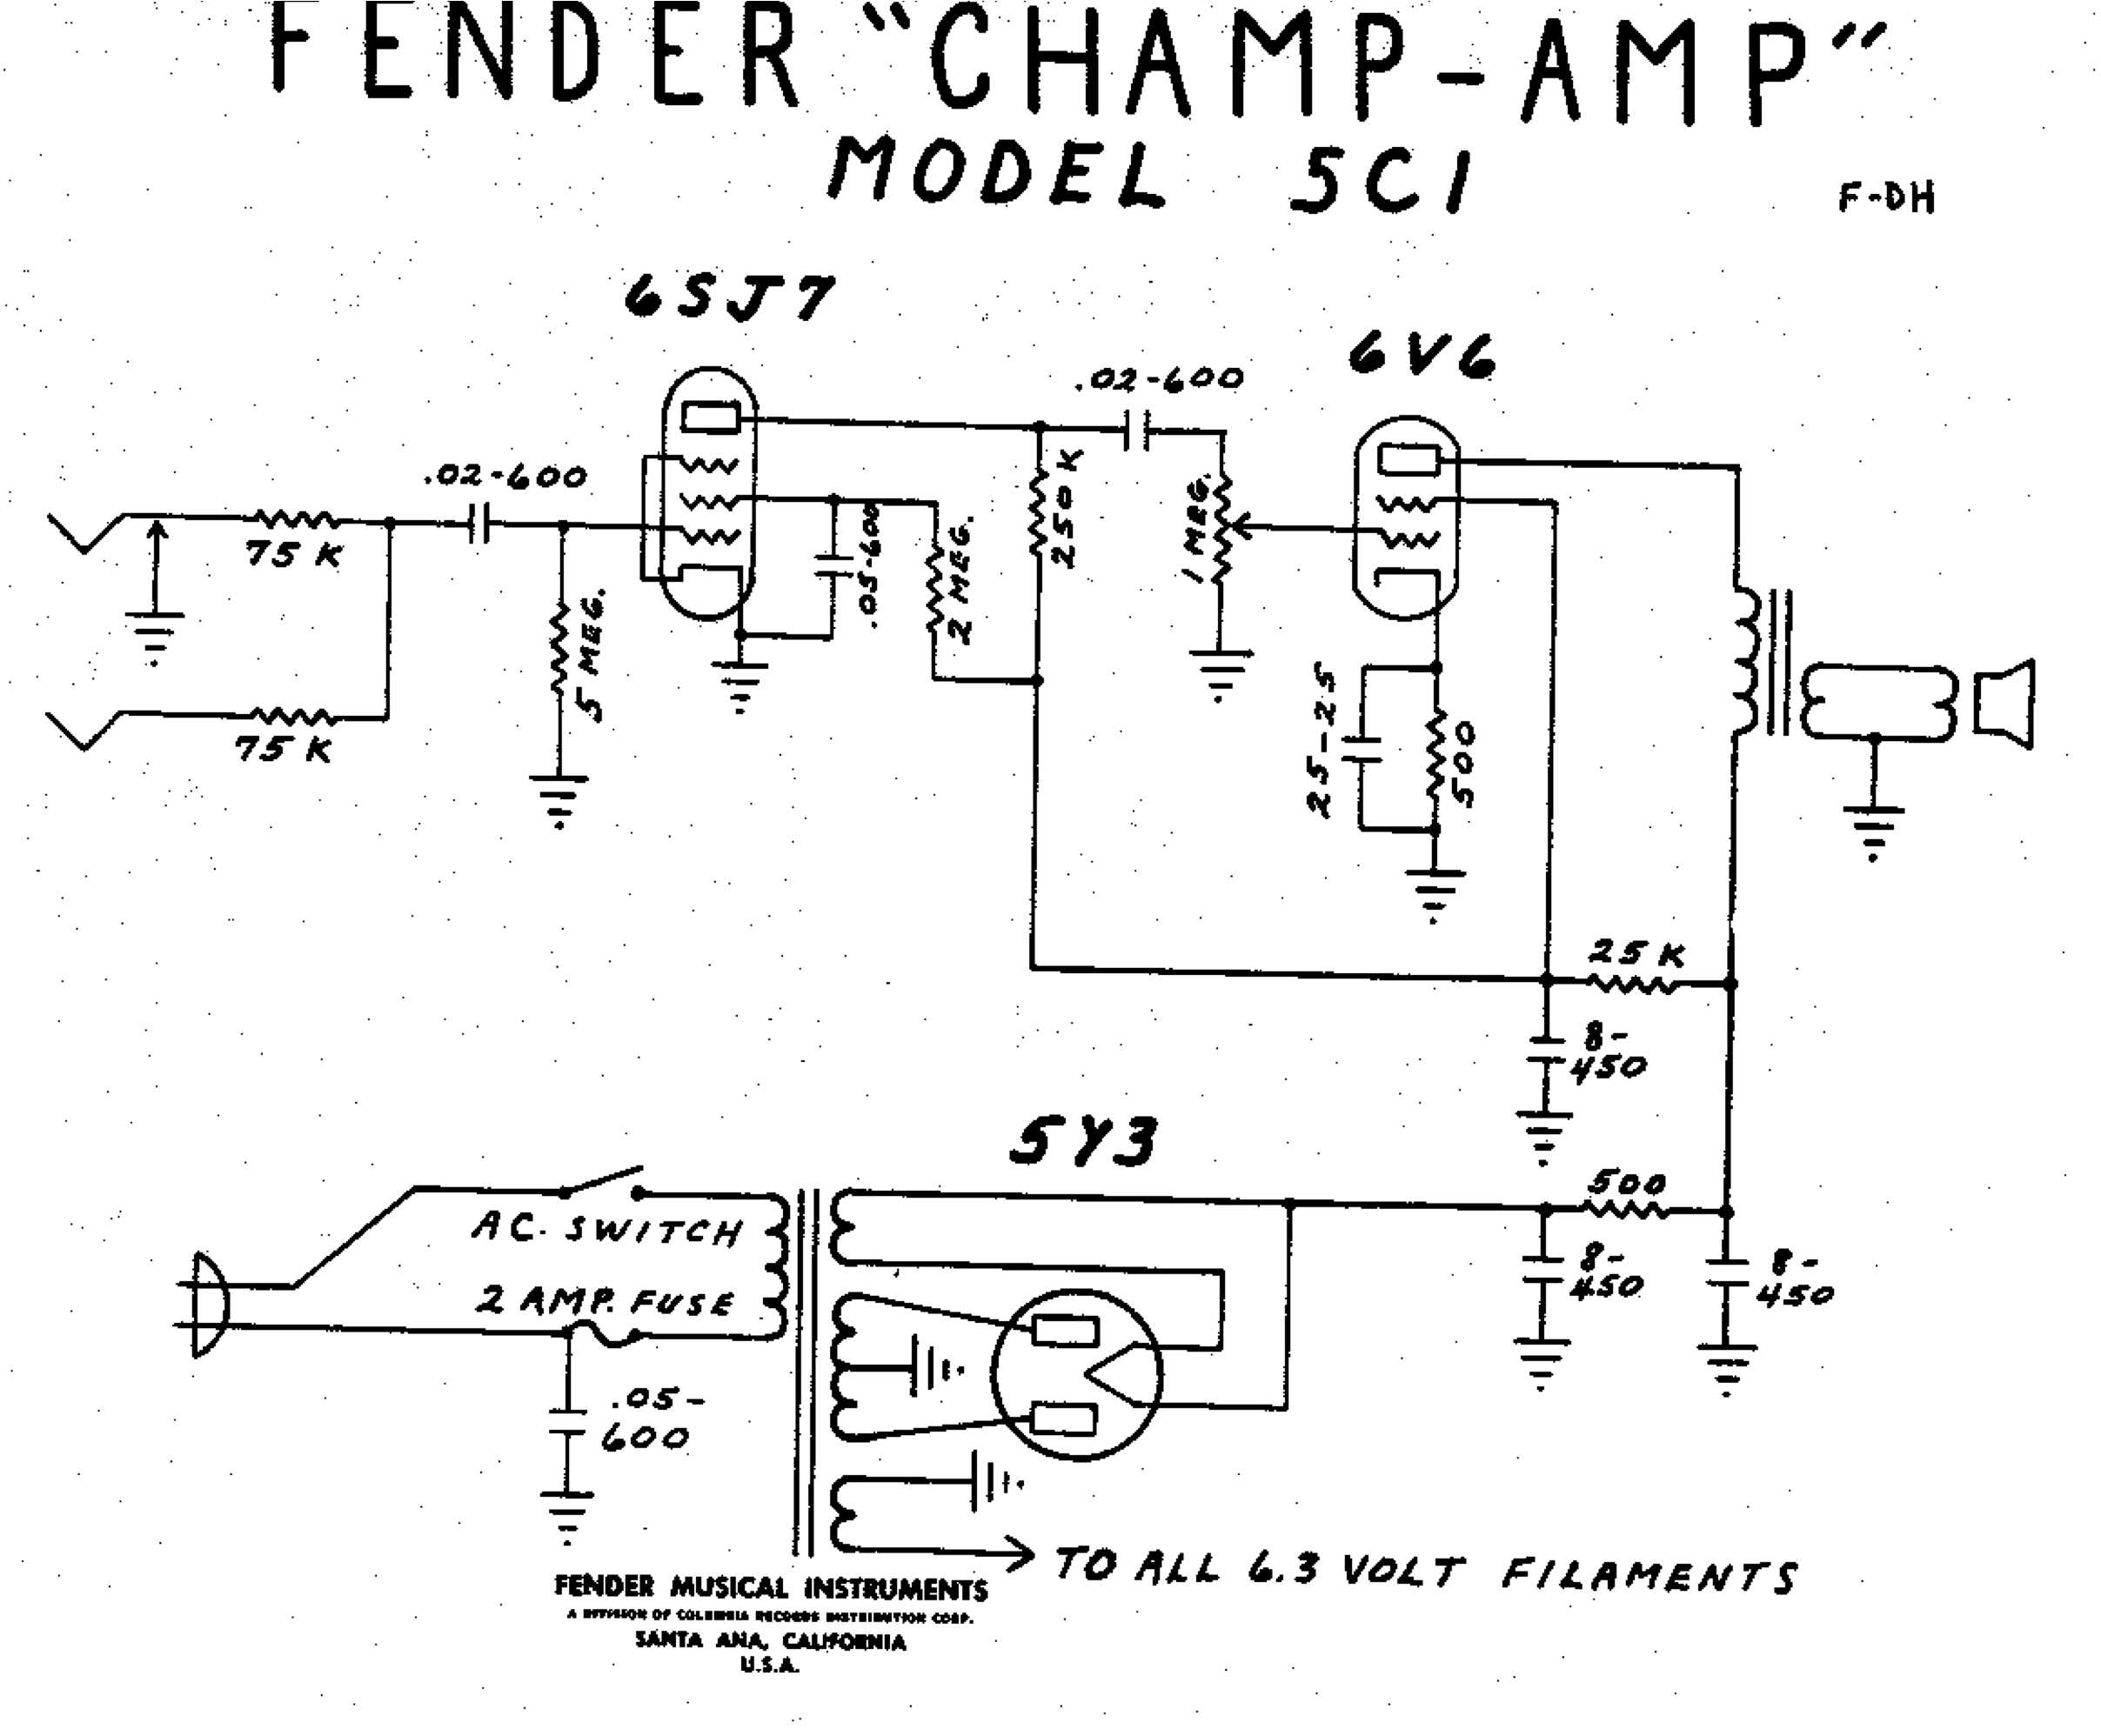 fender champ 5c1 wiring diagram my fender champ vintage amps rh myfenderchamp com fender vibro champ wiring diagram fender vibro champ wiring diagram